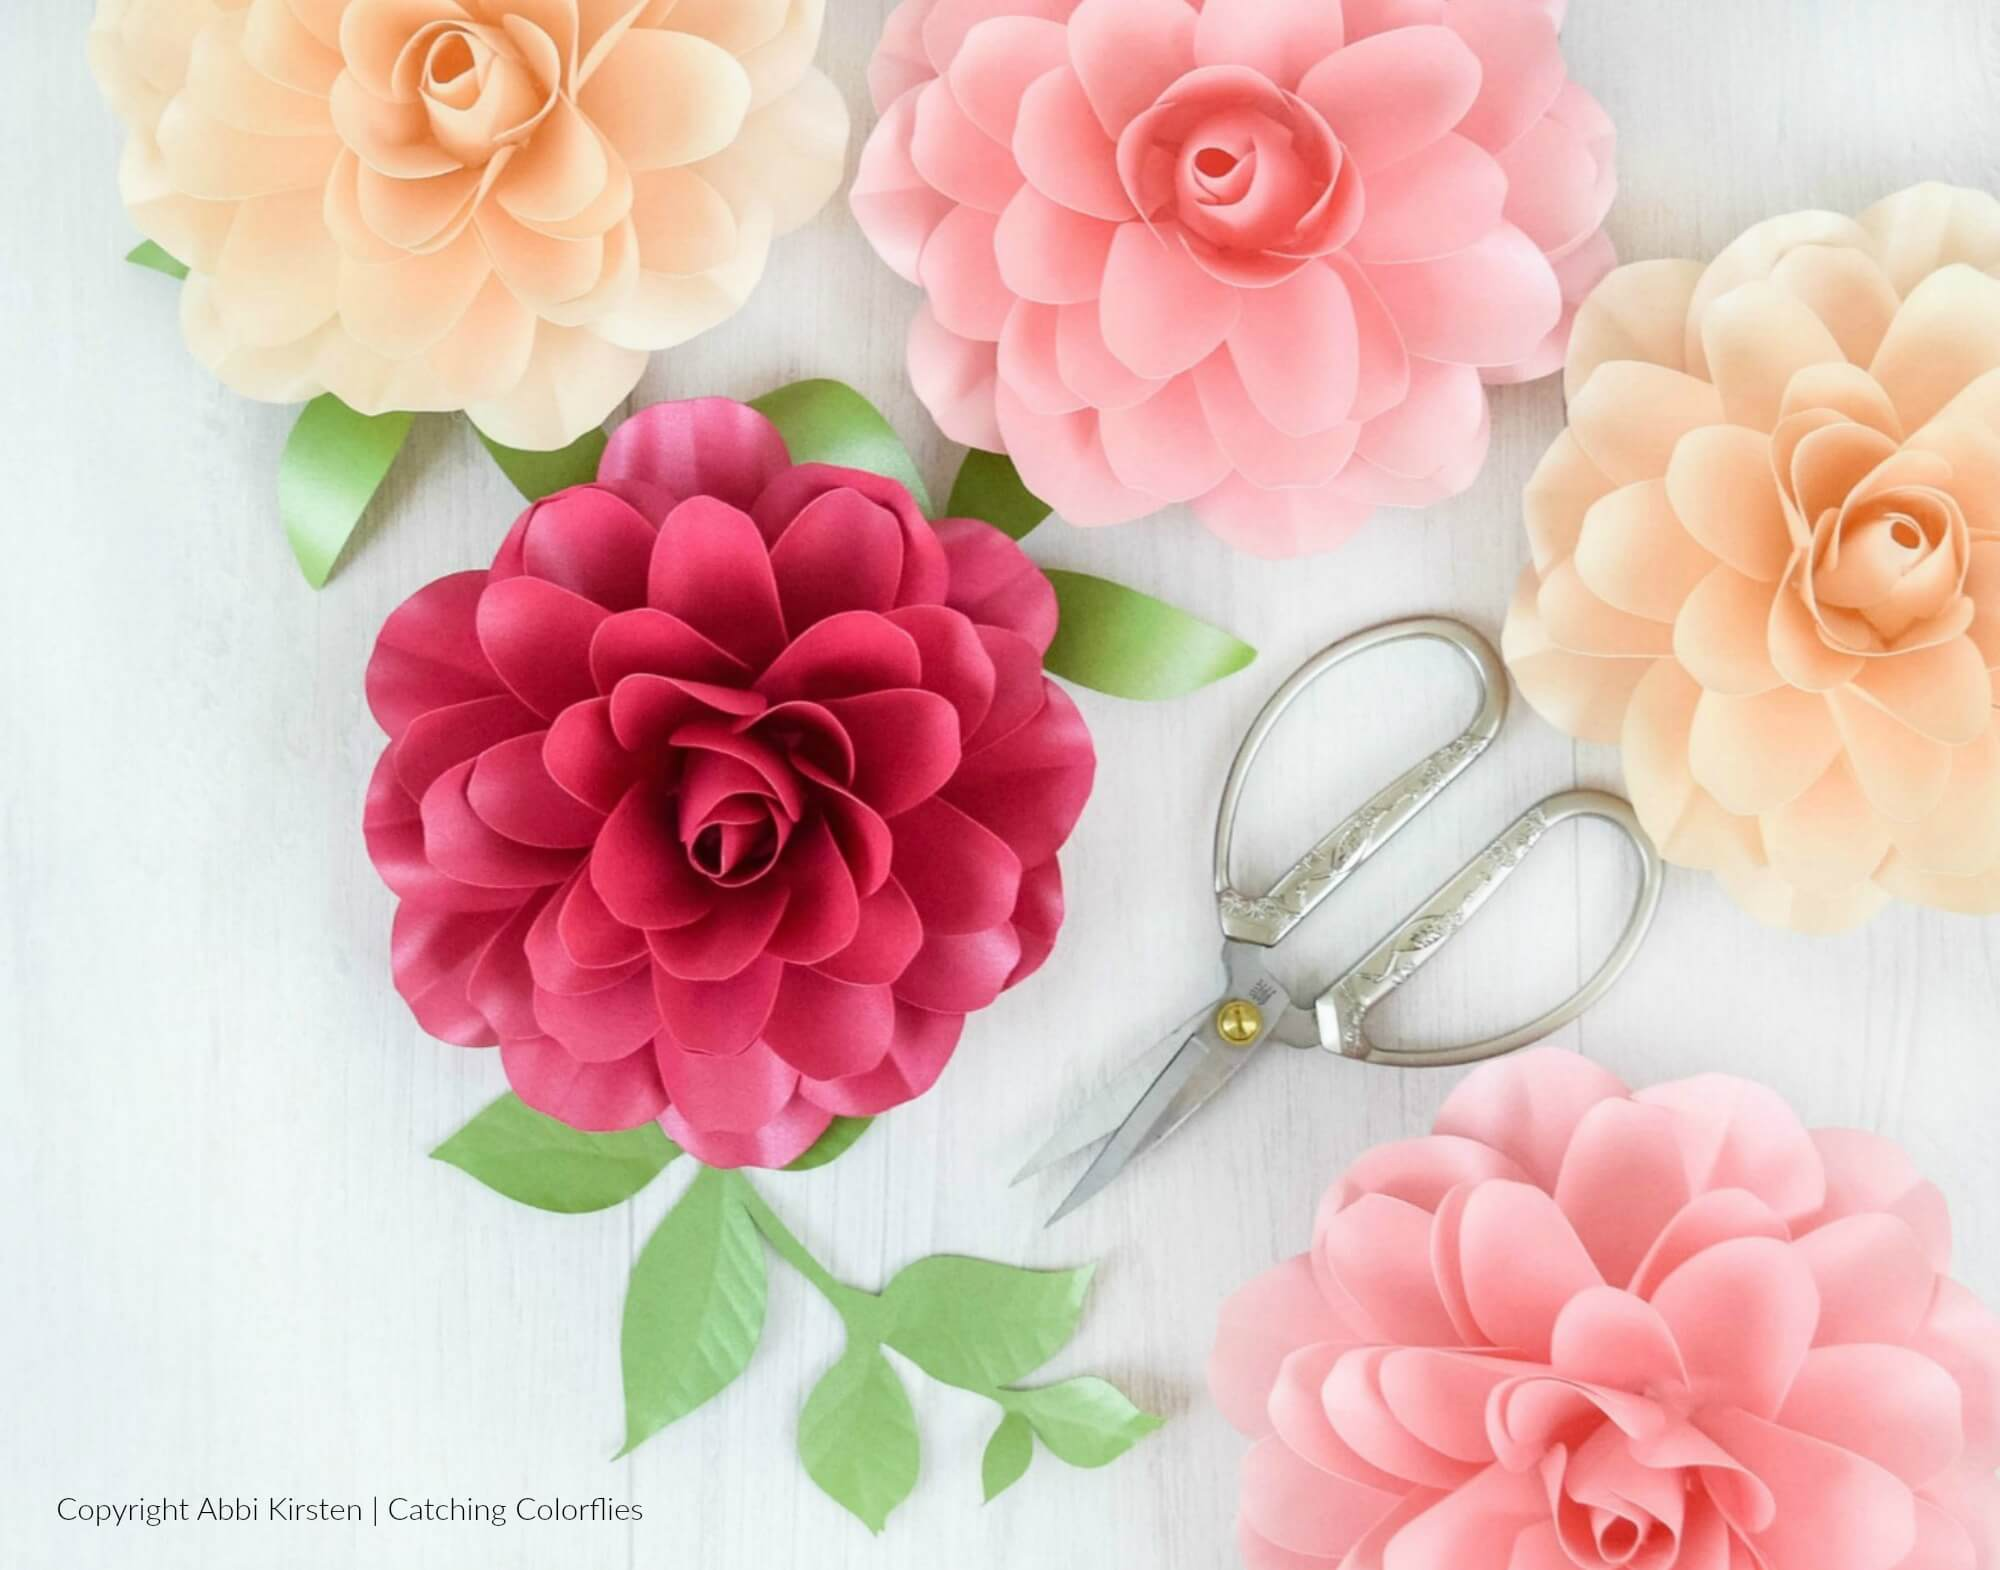 How to Make Small Paper Roses: Camellia Rose Template & Tutorial